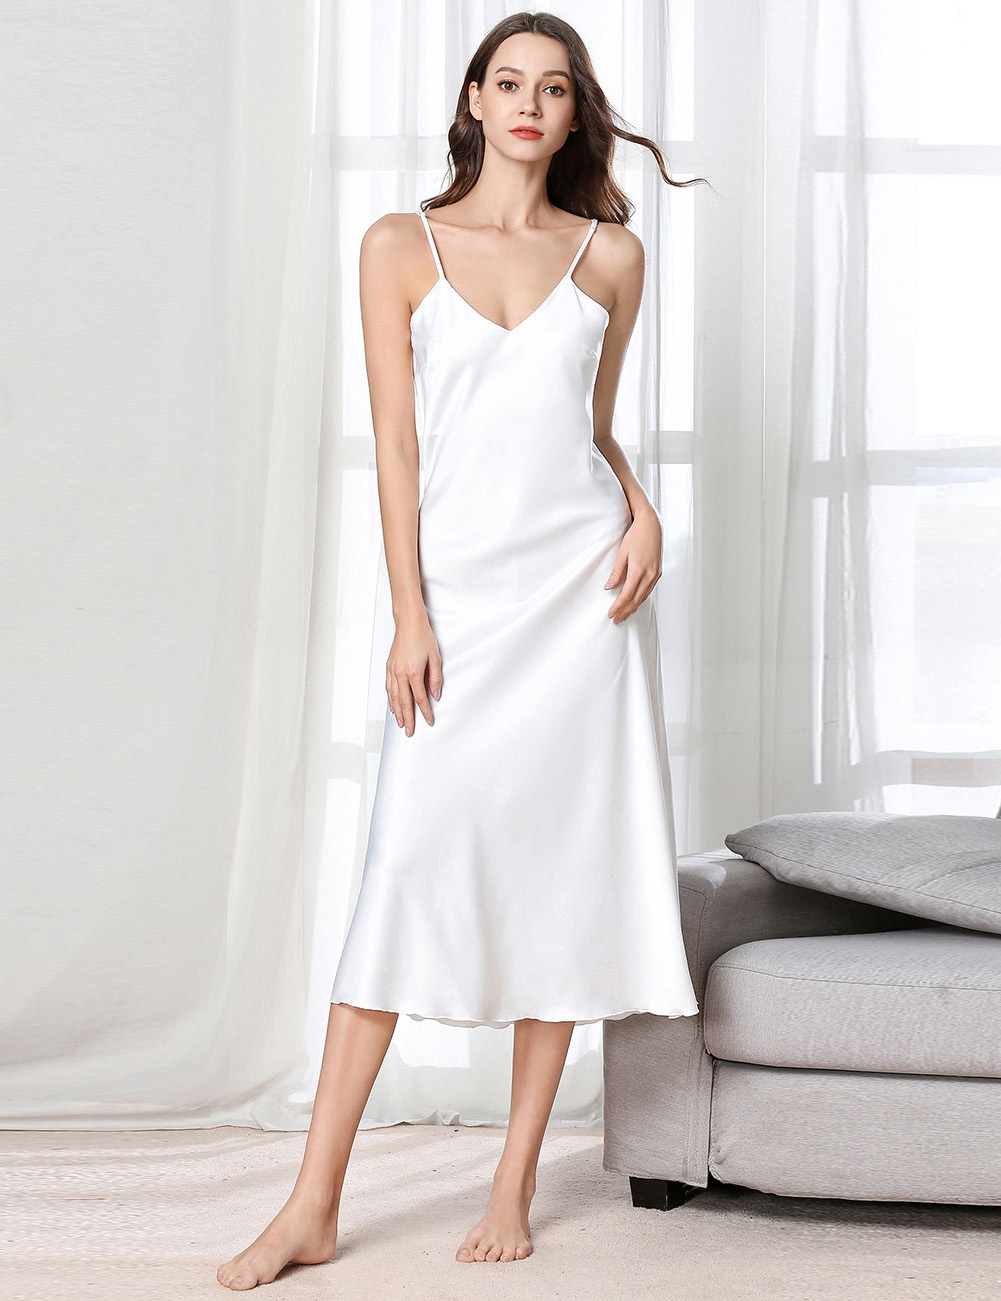 //cdn.affectcloud.com/feelingirldress/upload/imgs/2019-06-28/SY190152-WH1/SY190152-WH1.jpg